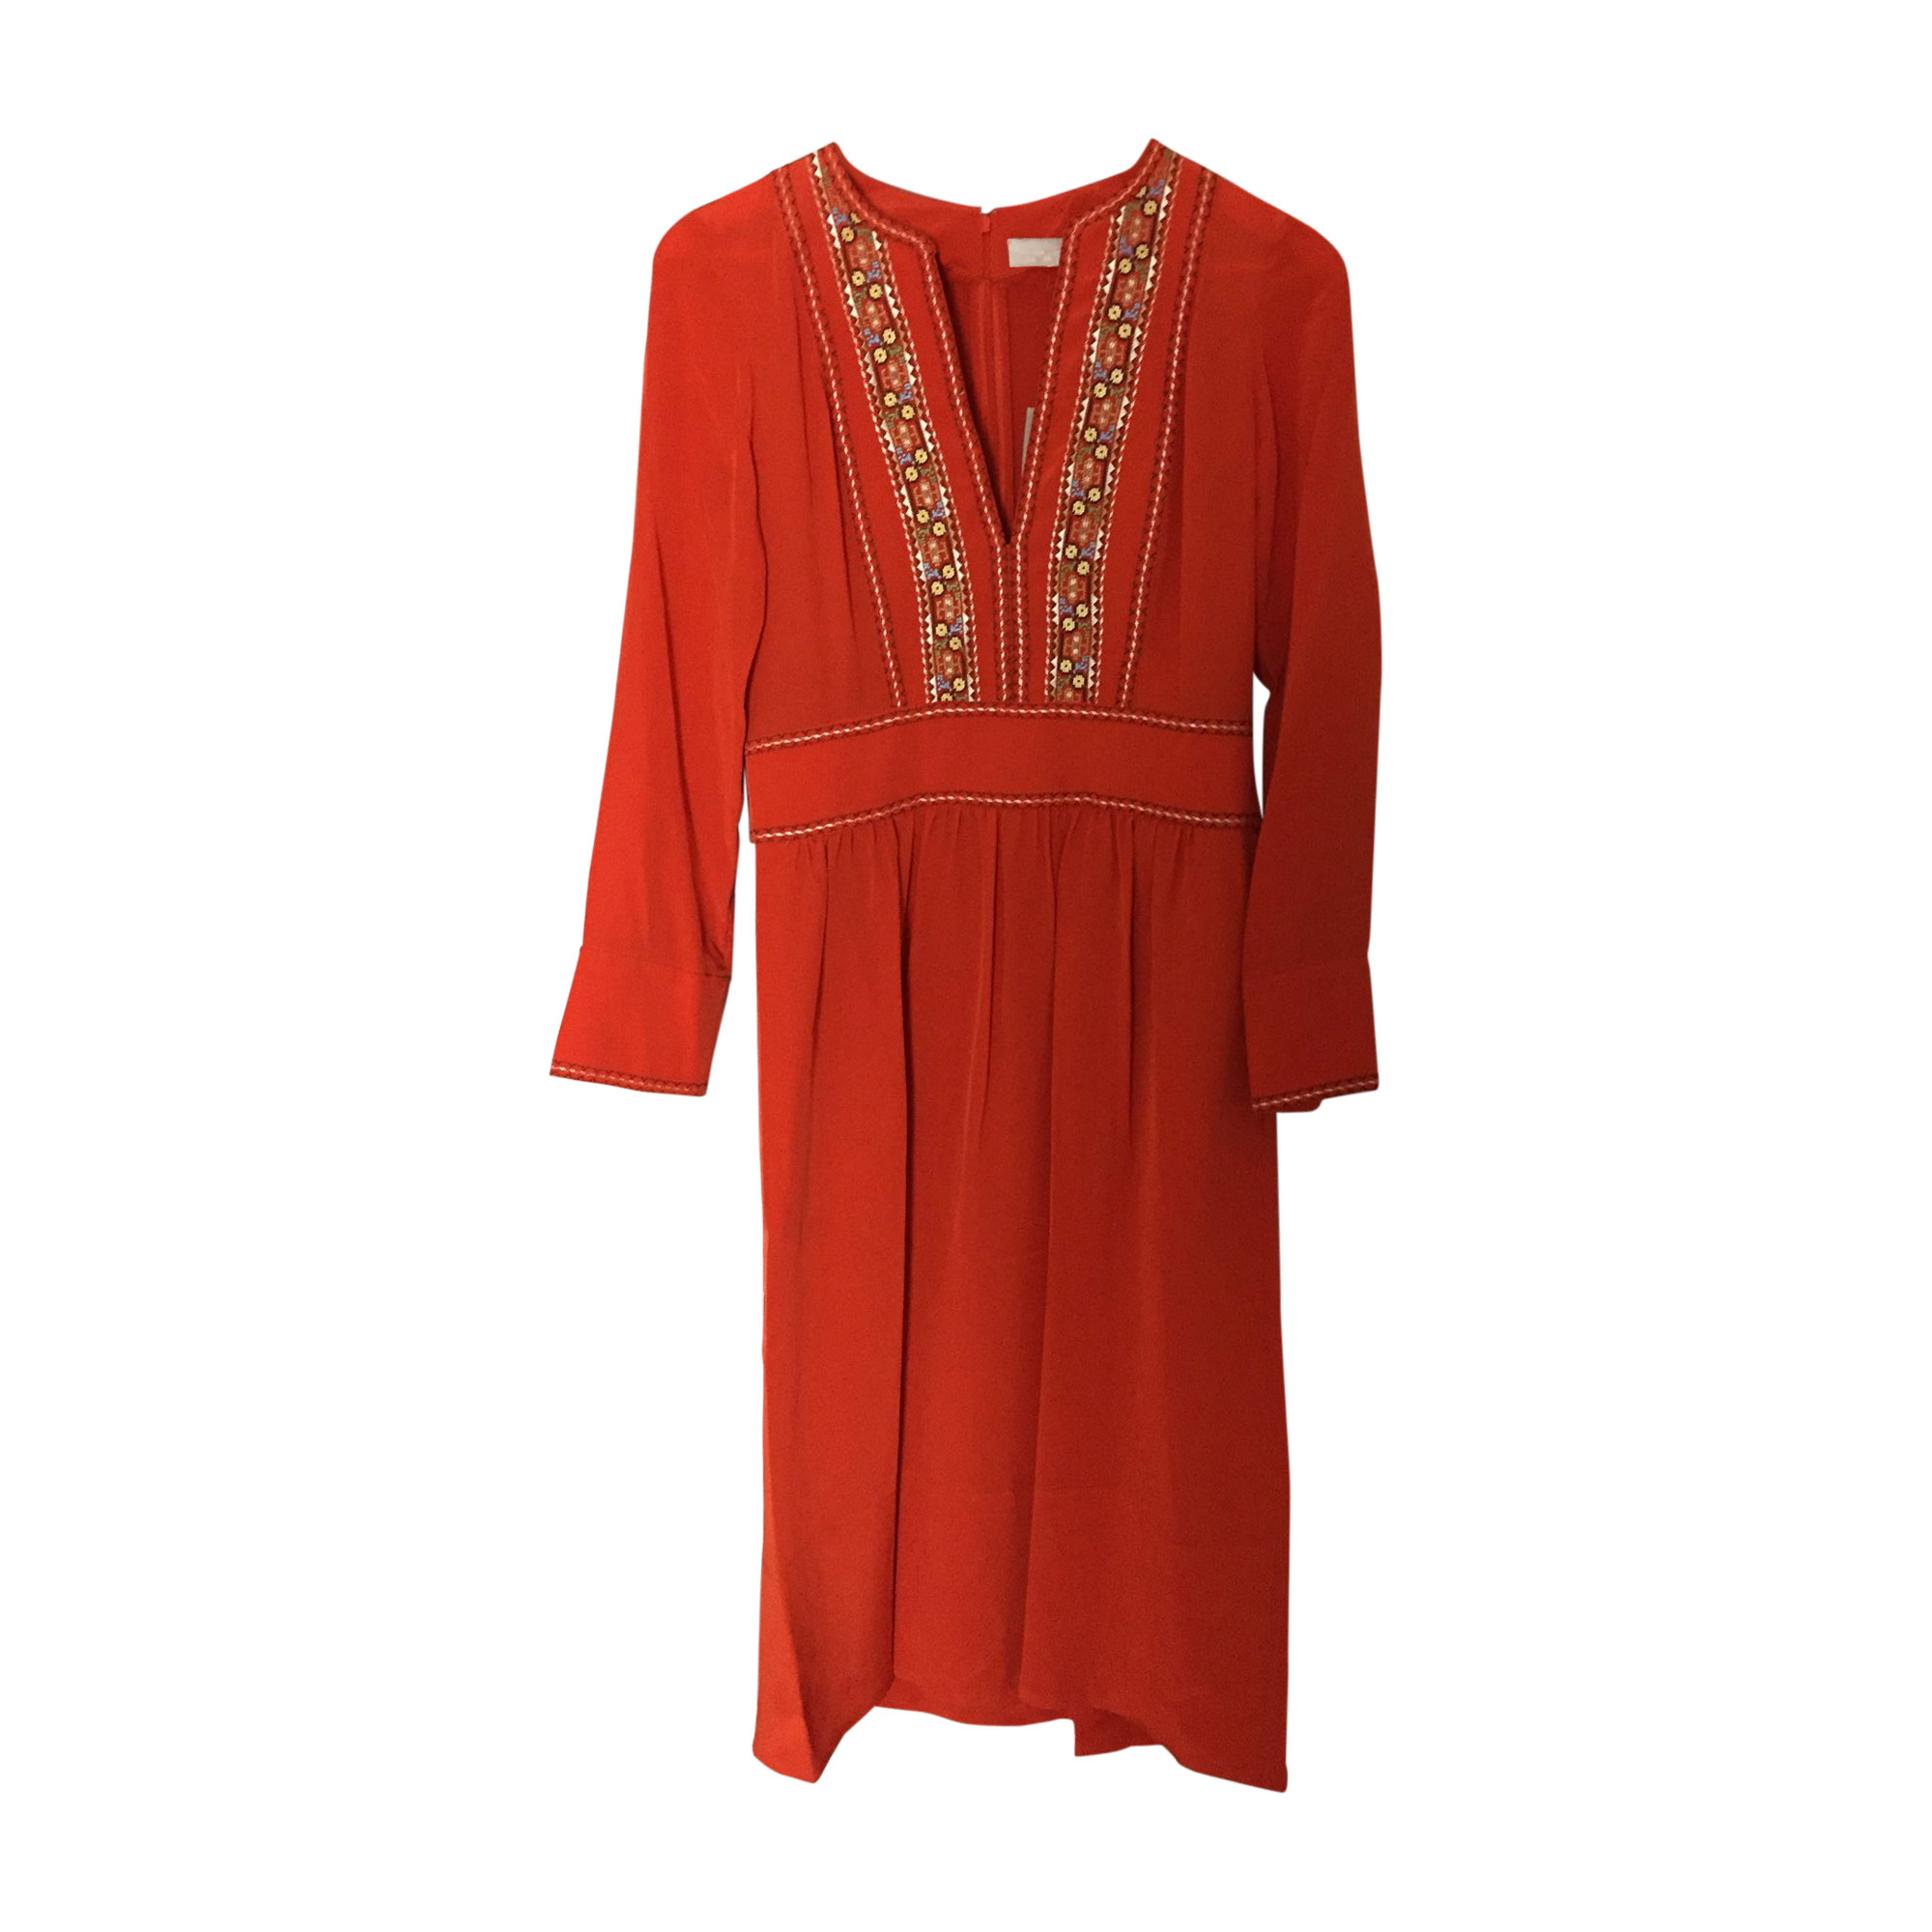 Midi Dress VANESSA BRUNO Orange